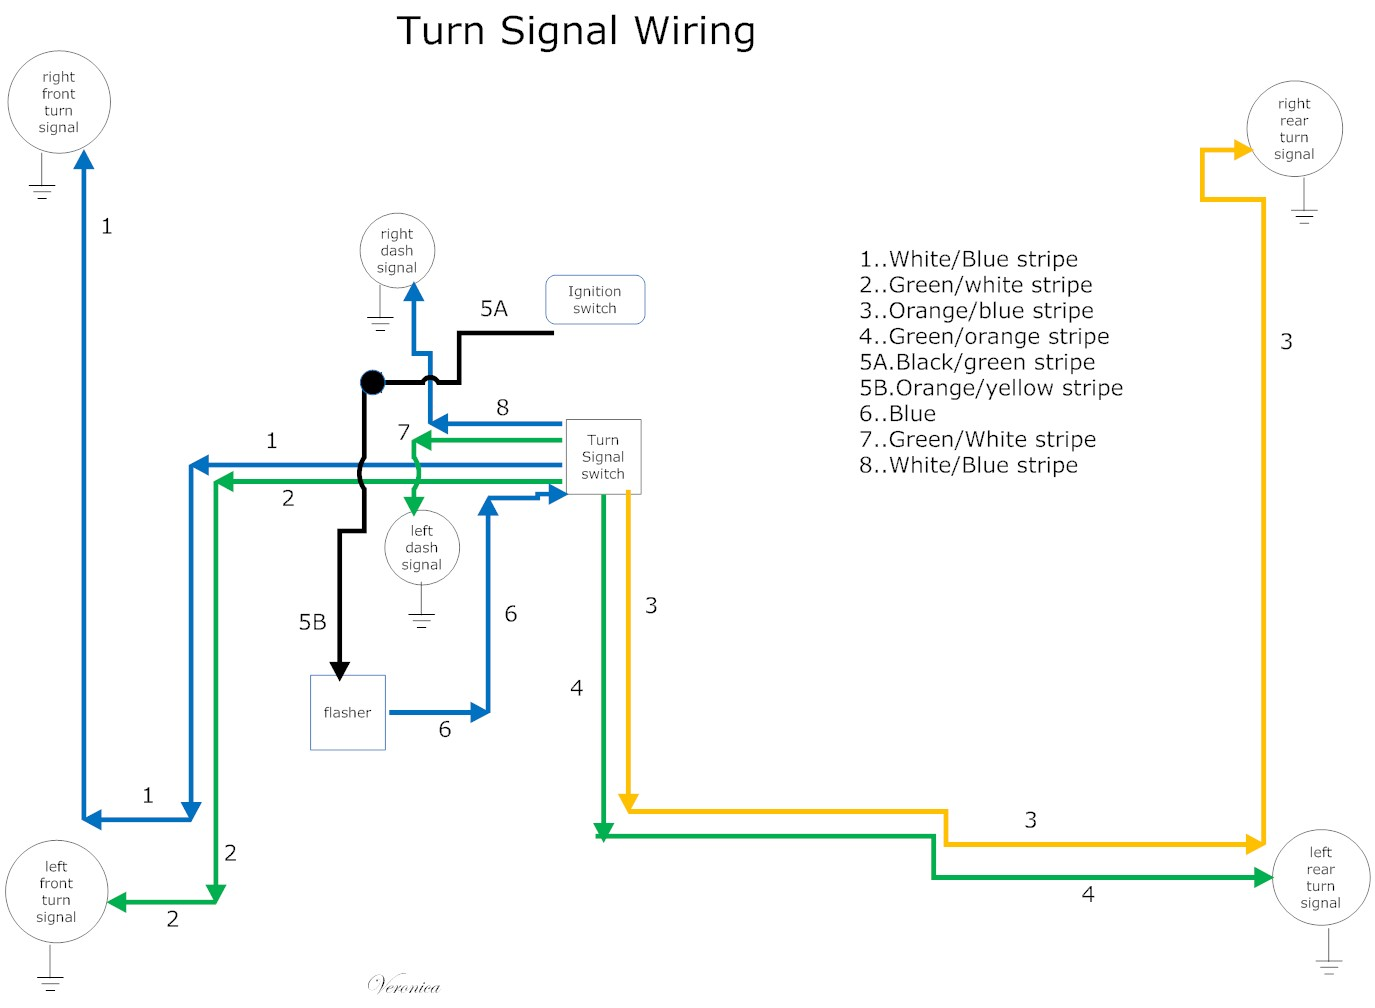 Turn+signal+Wiring 2015 mustang wiring diagram schematic mustang 2015 \u2022 free wiring 1966 mustang wiring harness kit at readyjetset.co